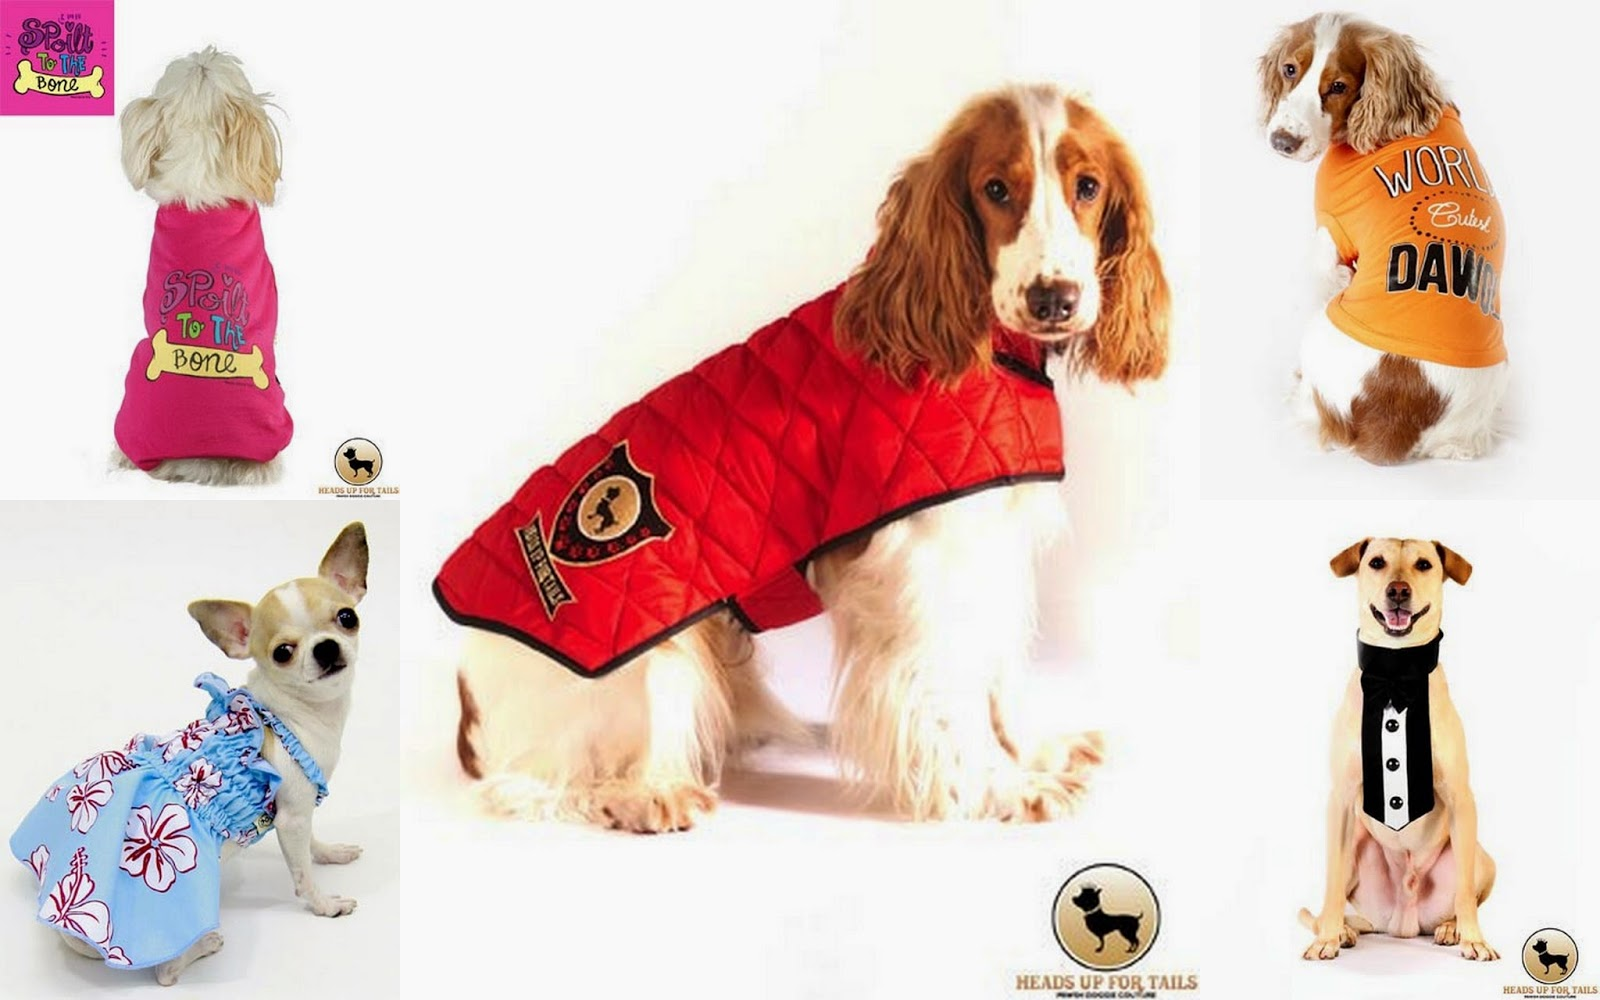 Dog, dog accessories, dog clothes, dog collar, dog food, dog toys, personalized dog collar, personalized dog name tag,dog raincoat s, dog jackets, dog food, dog vegetarian food, dogs wet food, dogs dry food, dogs tshirt , dogs perfumes, dogs shampoo, dogs accessories, dog soap , dog powder, dog conditioner, dog toys , dog shoes, dog beds, dog needs